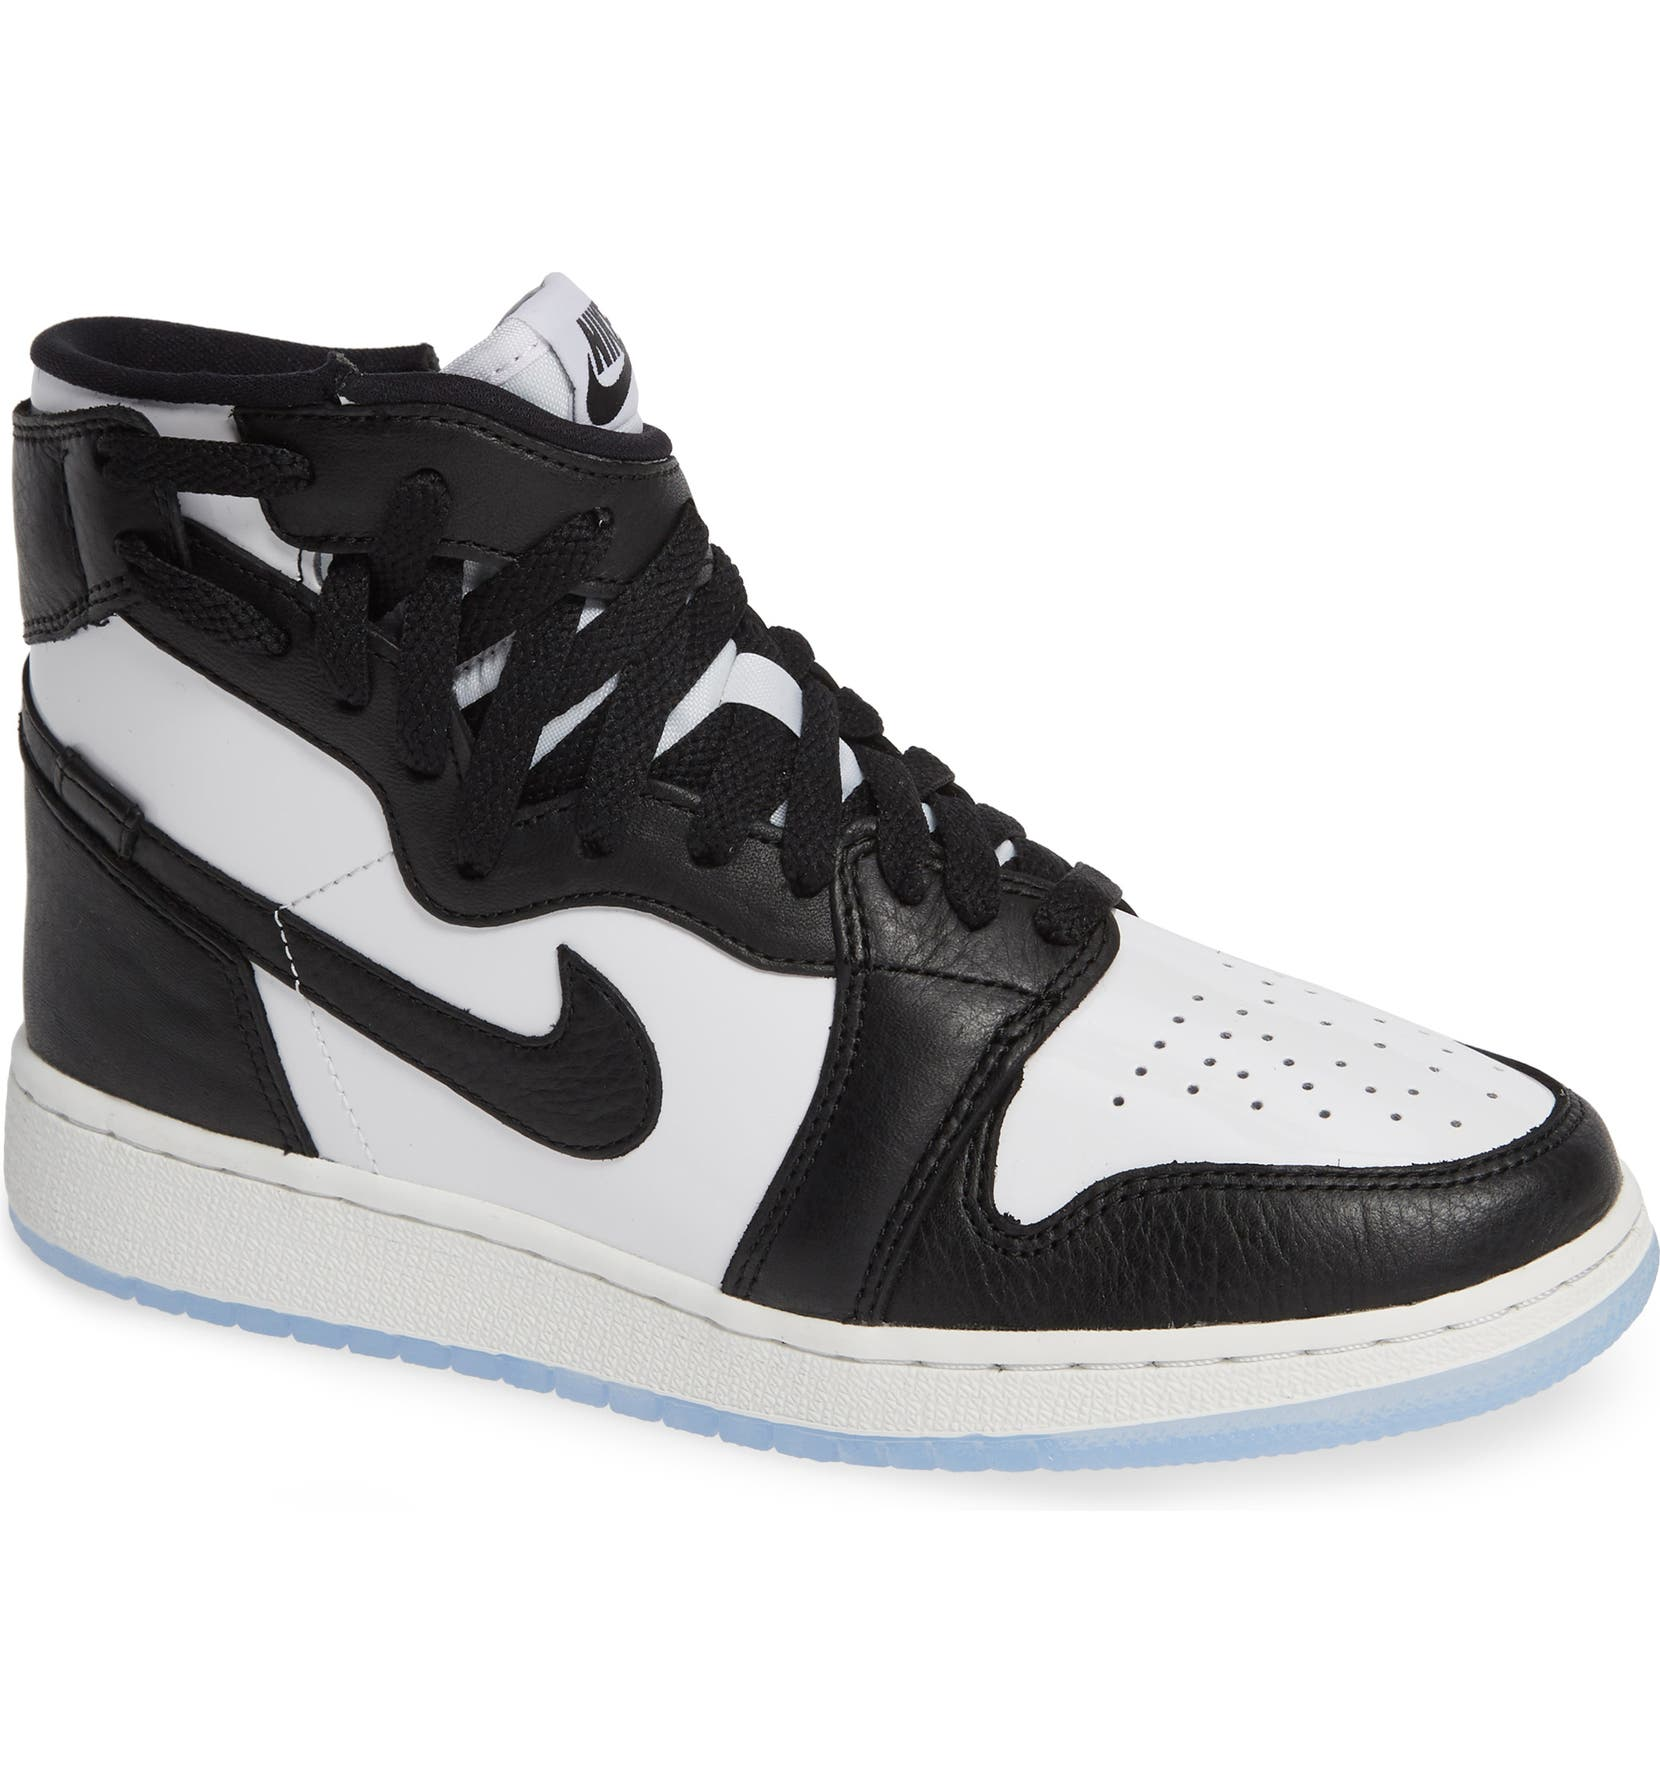 Nike Air Jordan 1 Rebel XX High Top Sneaker (Women)  22e49ecac1